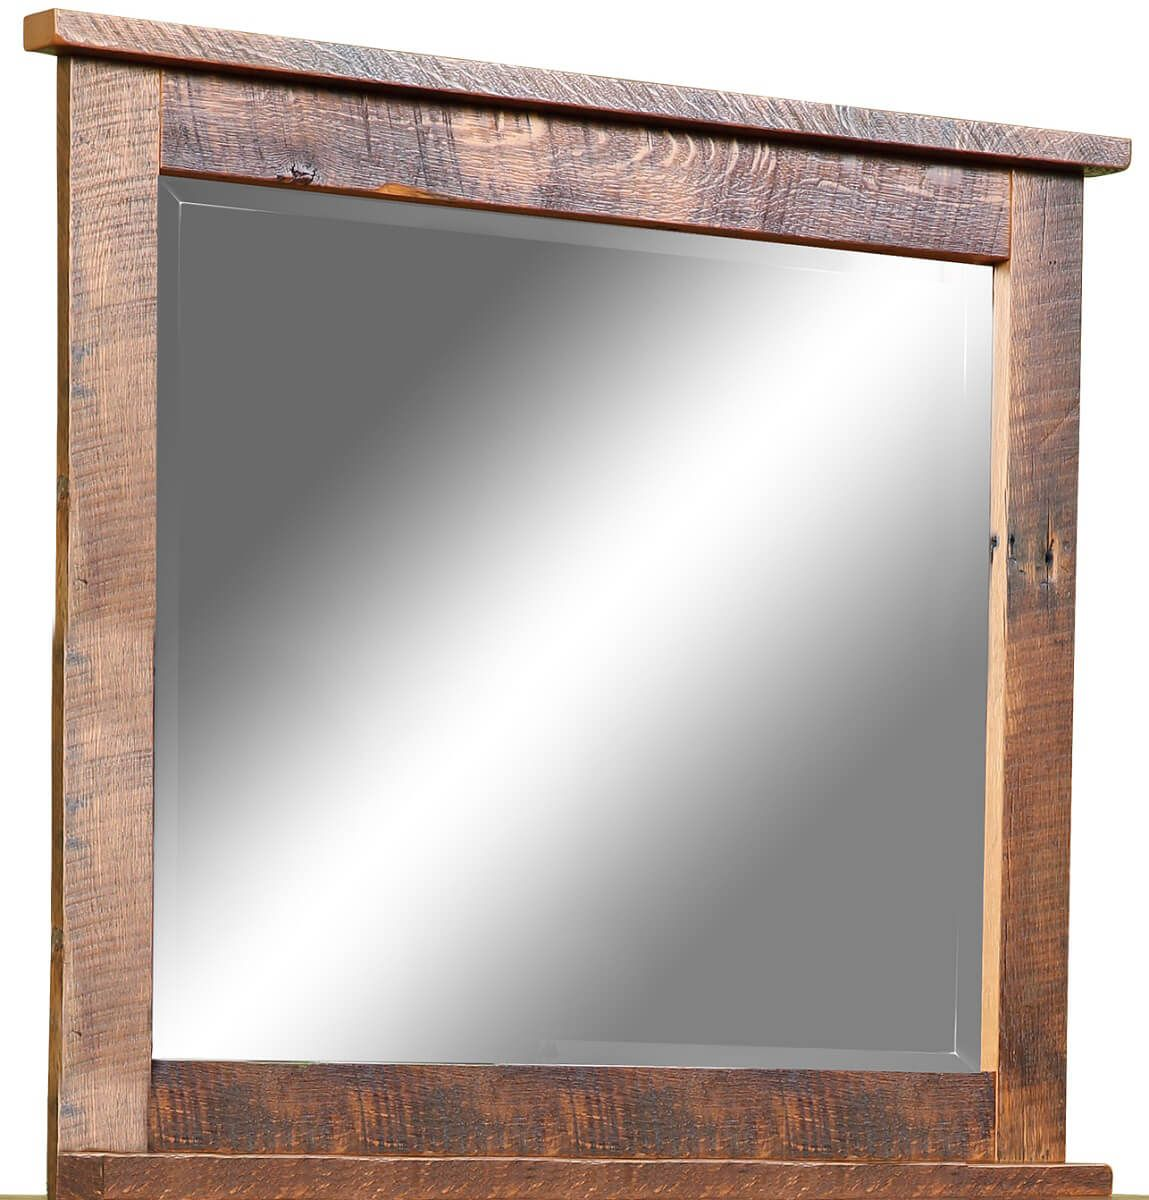 Beveled Mirror is Included